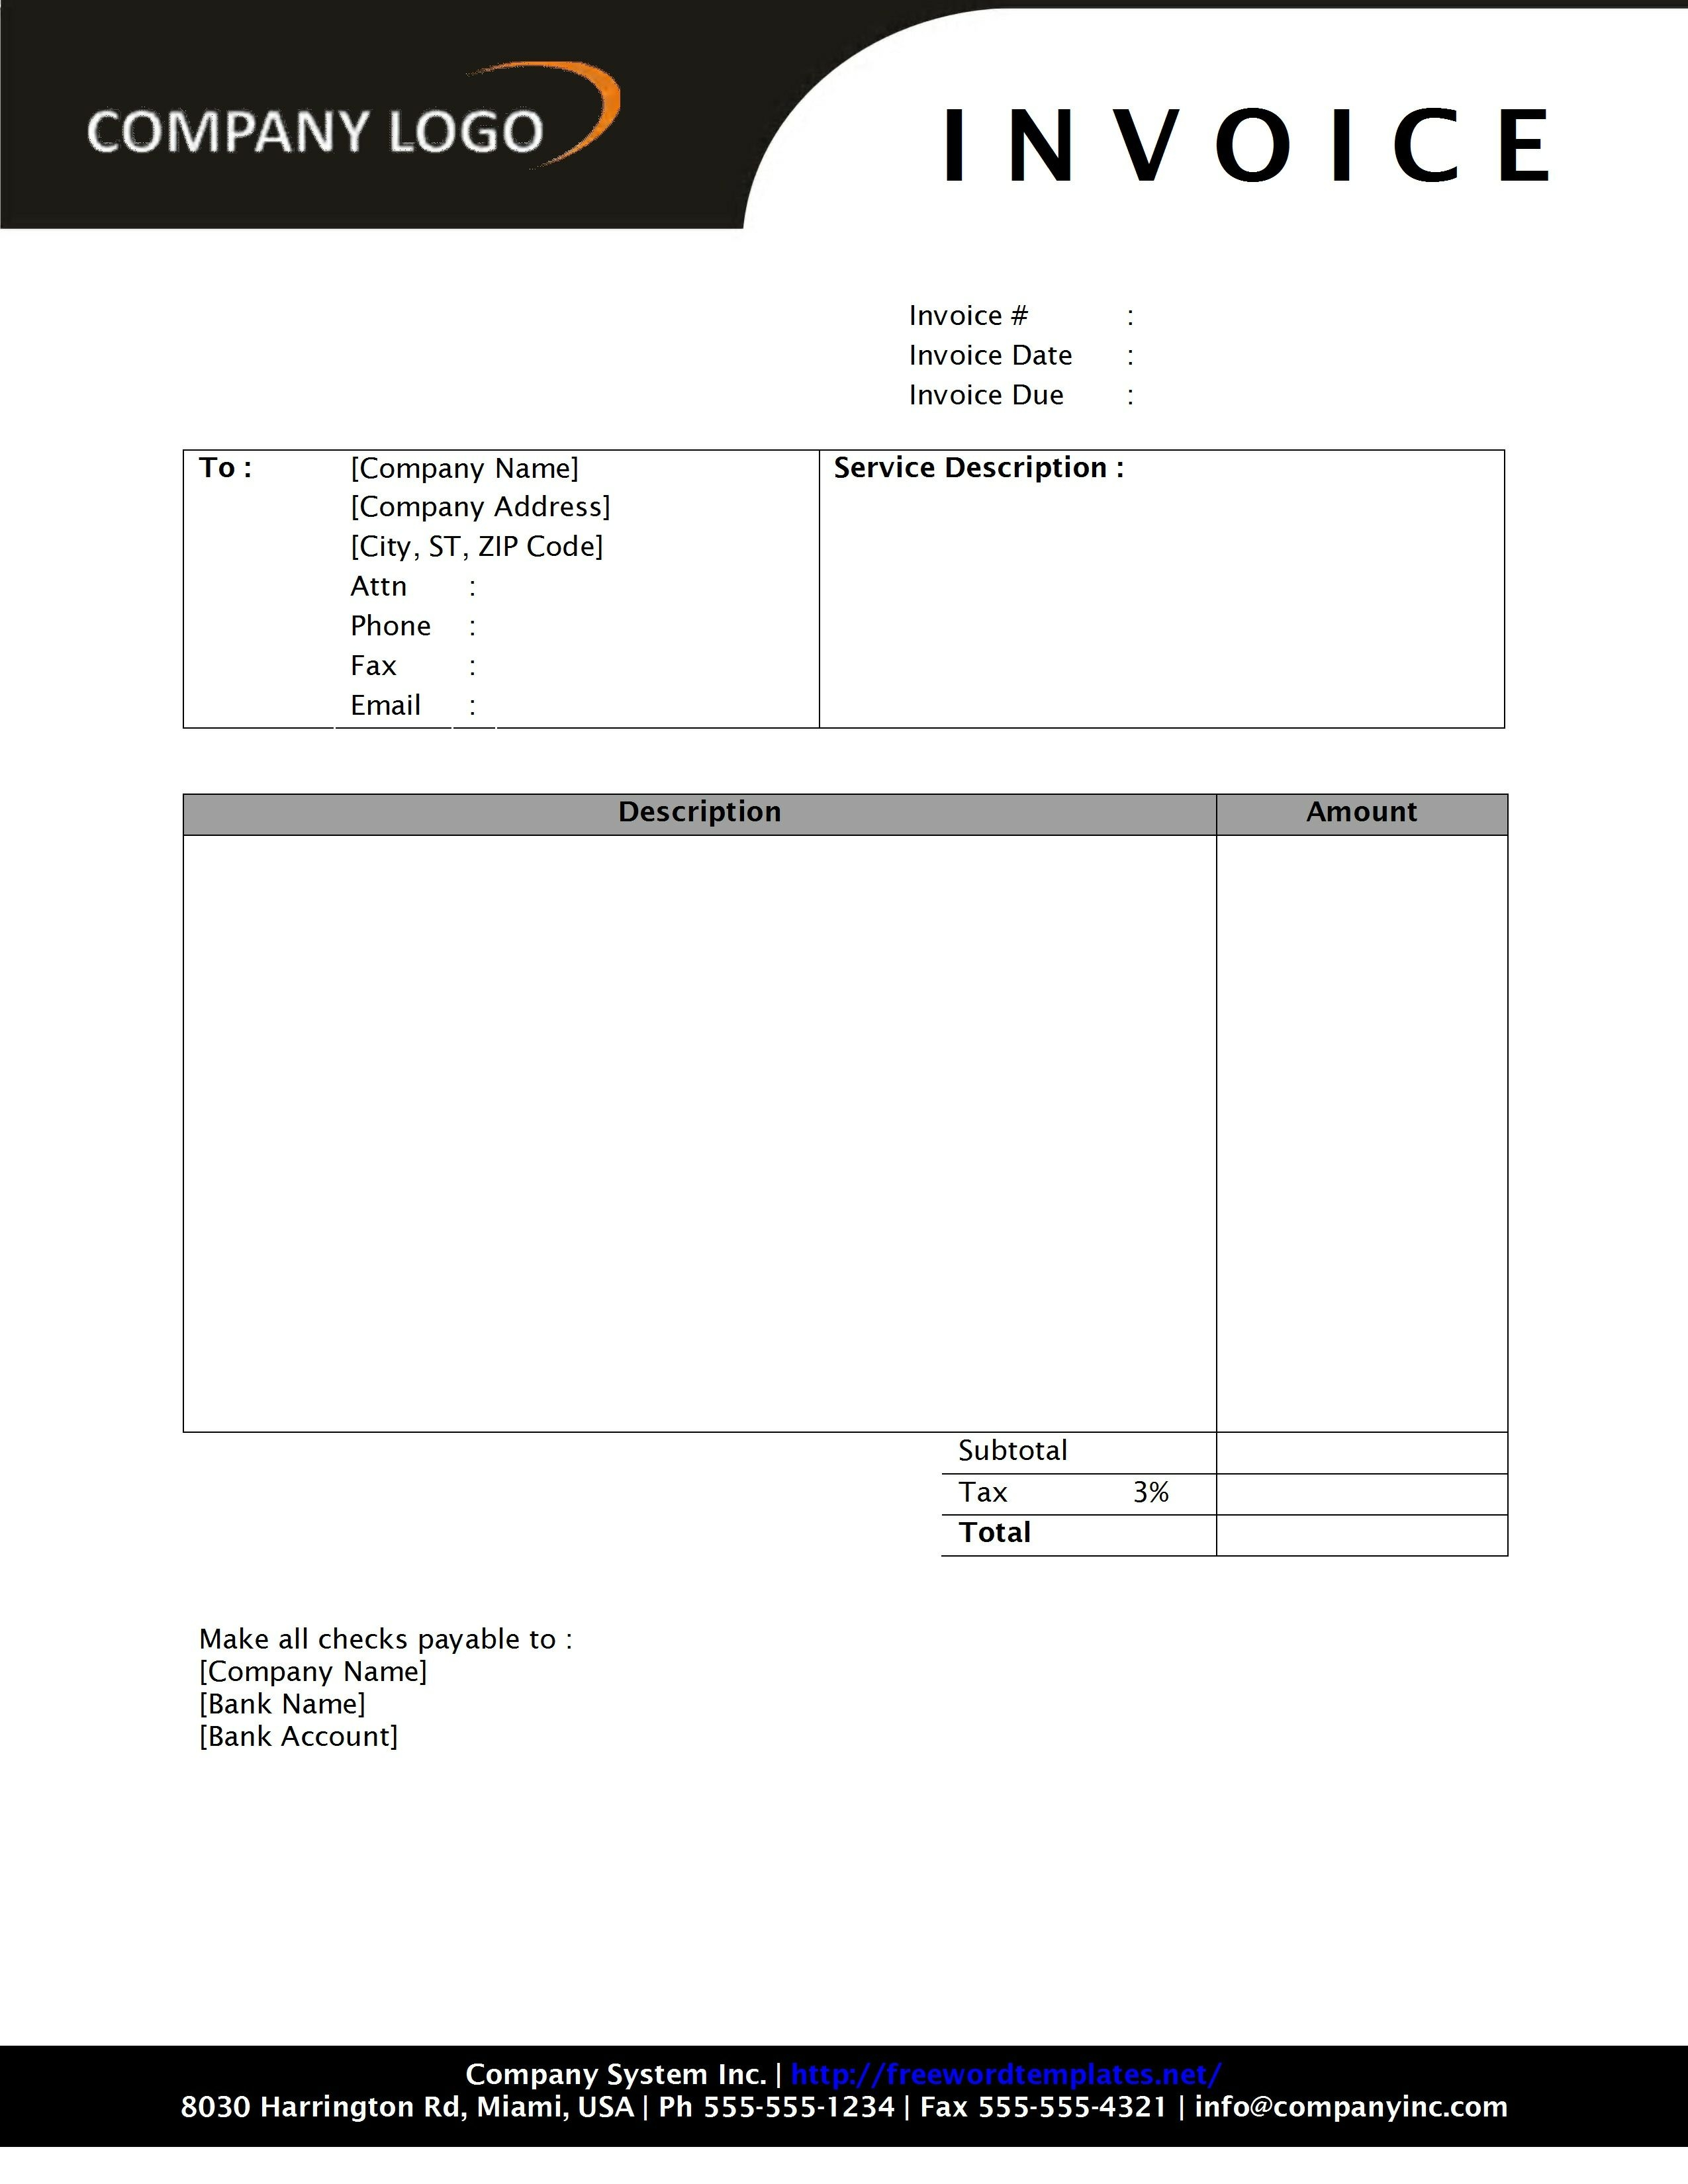 libreoffice invoice template home invoice invoice libreoffice base 74 home invoice pt2 2550 X 3300